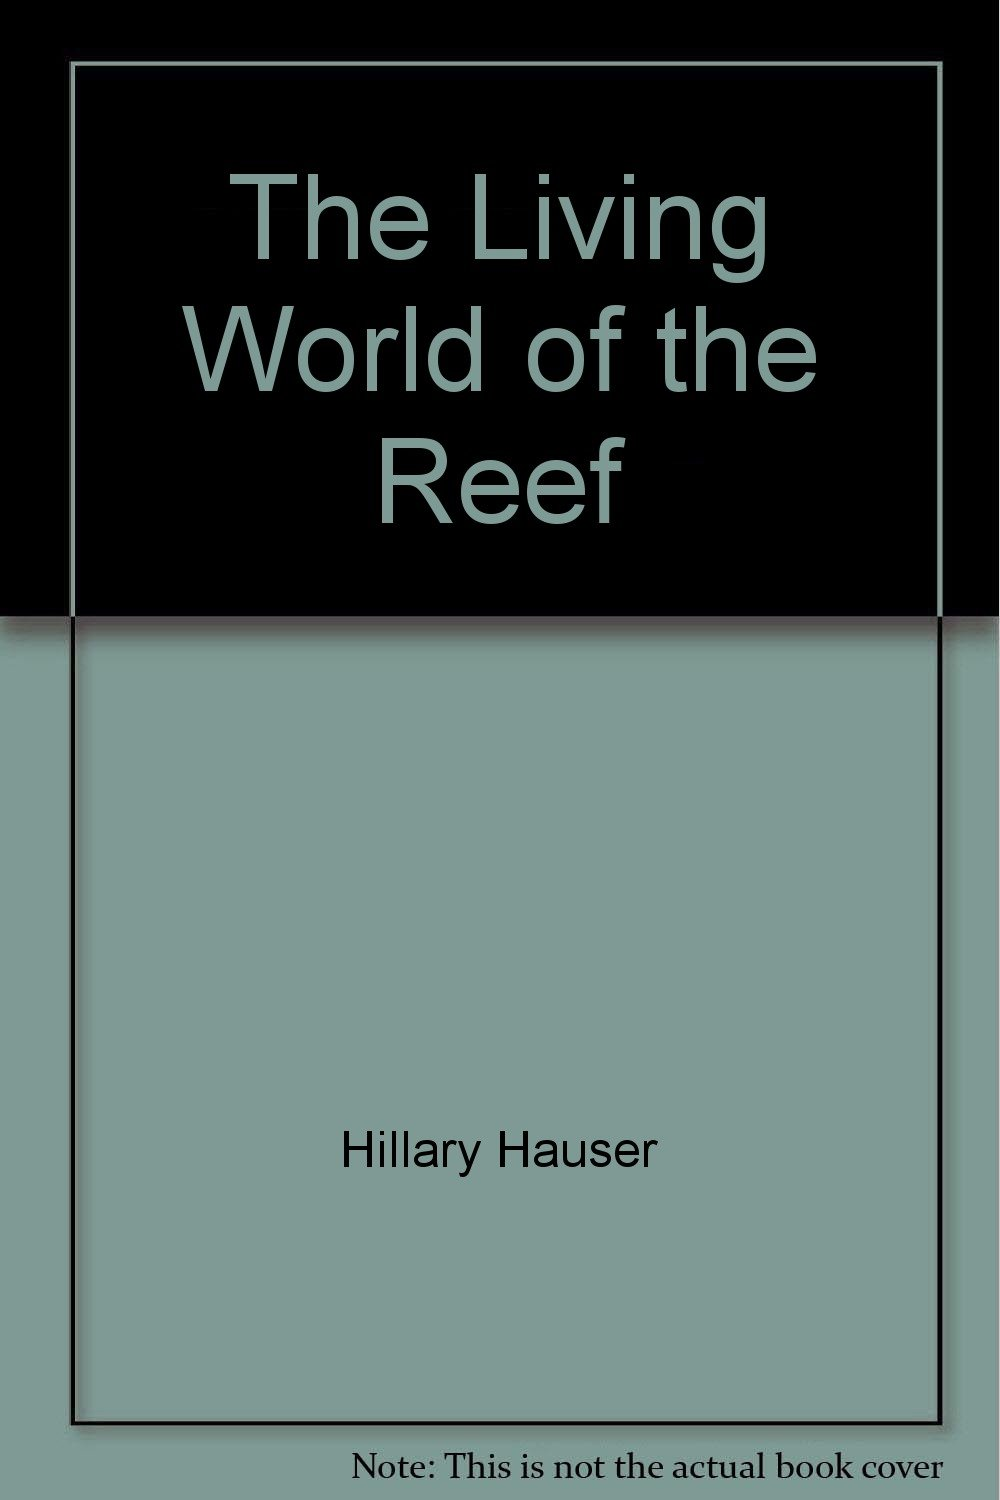 The Living World of the Reef